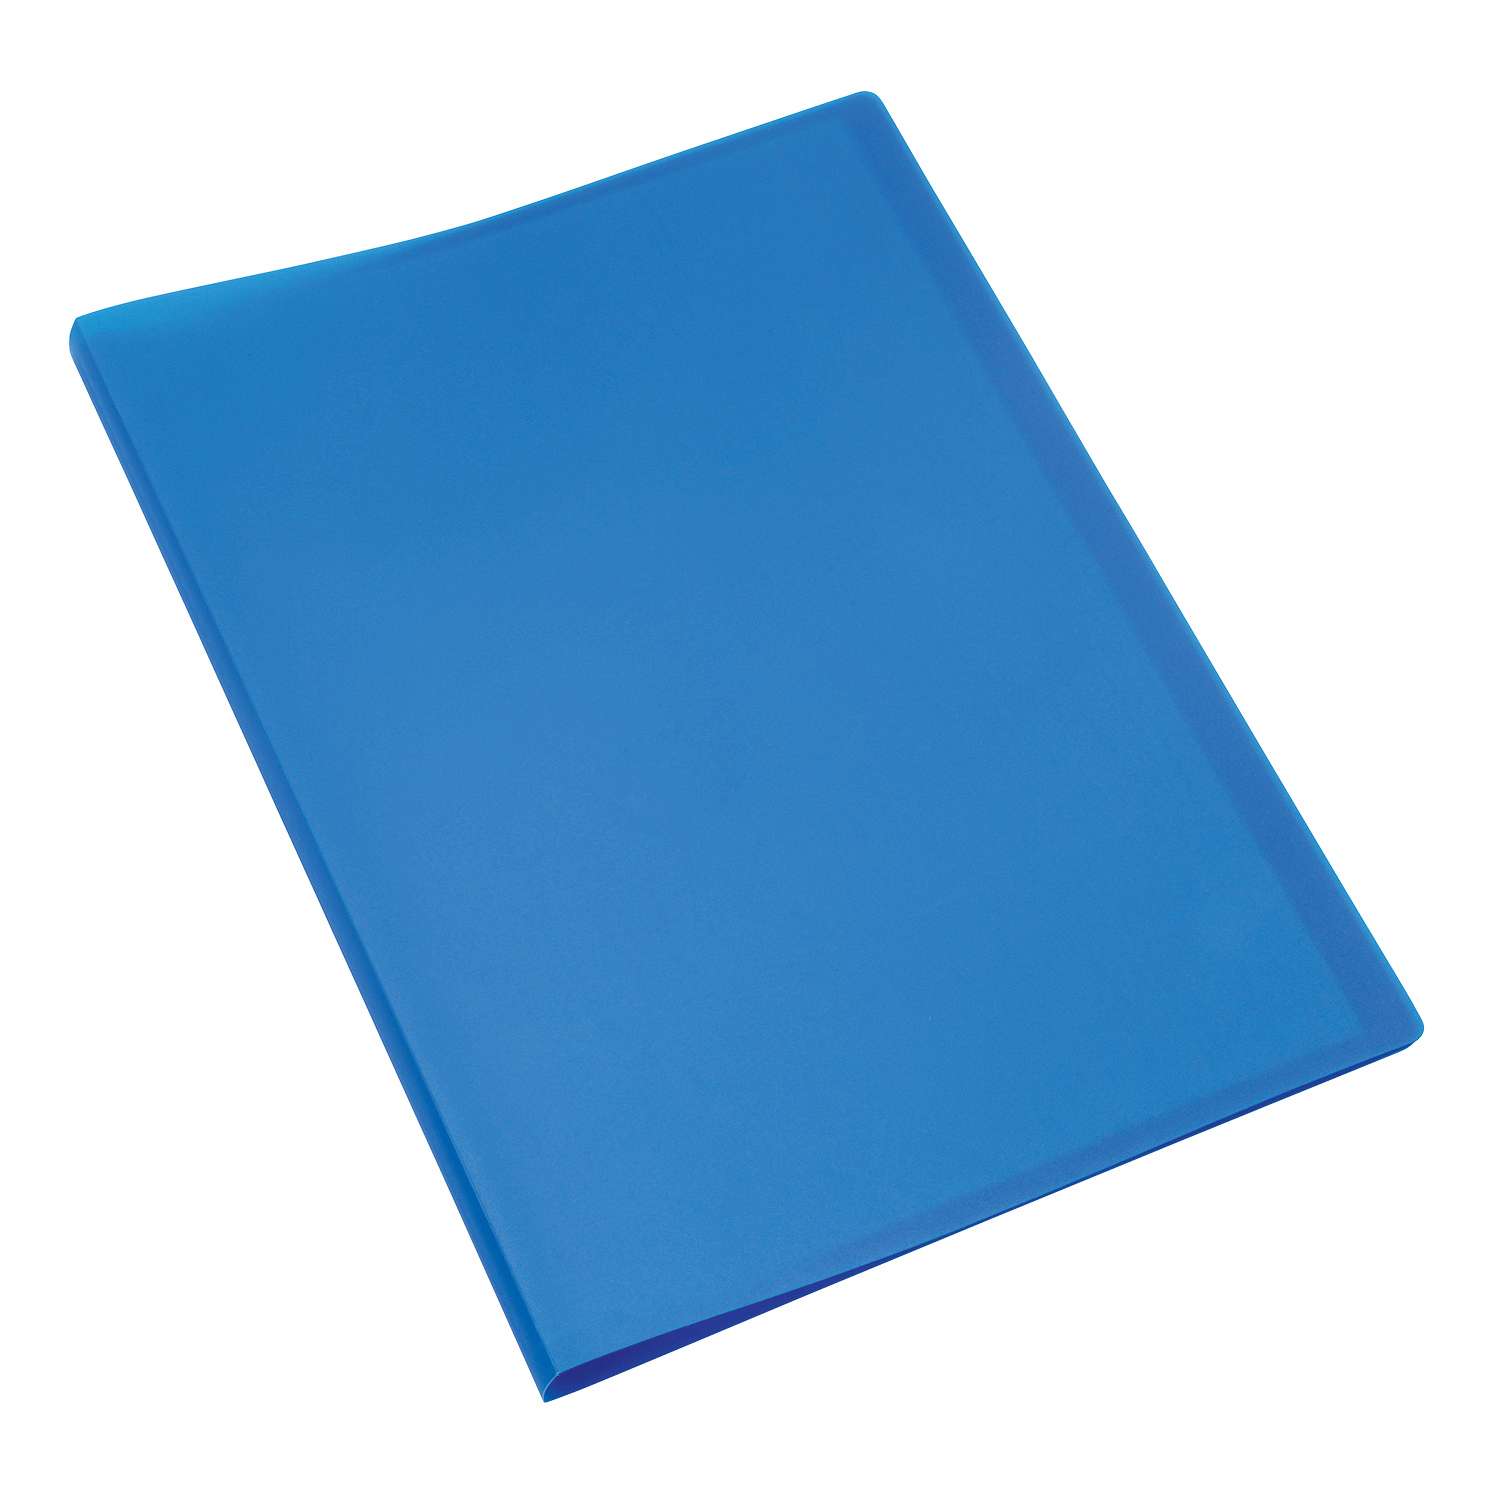 Display Books 5 Star Office Display Book Soft Cover Lightweight Polypropylene 20 Pockets A4 Blue